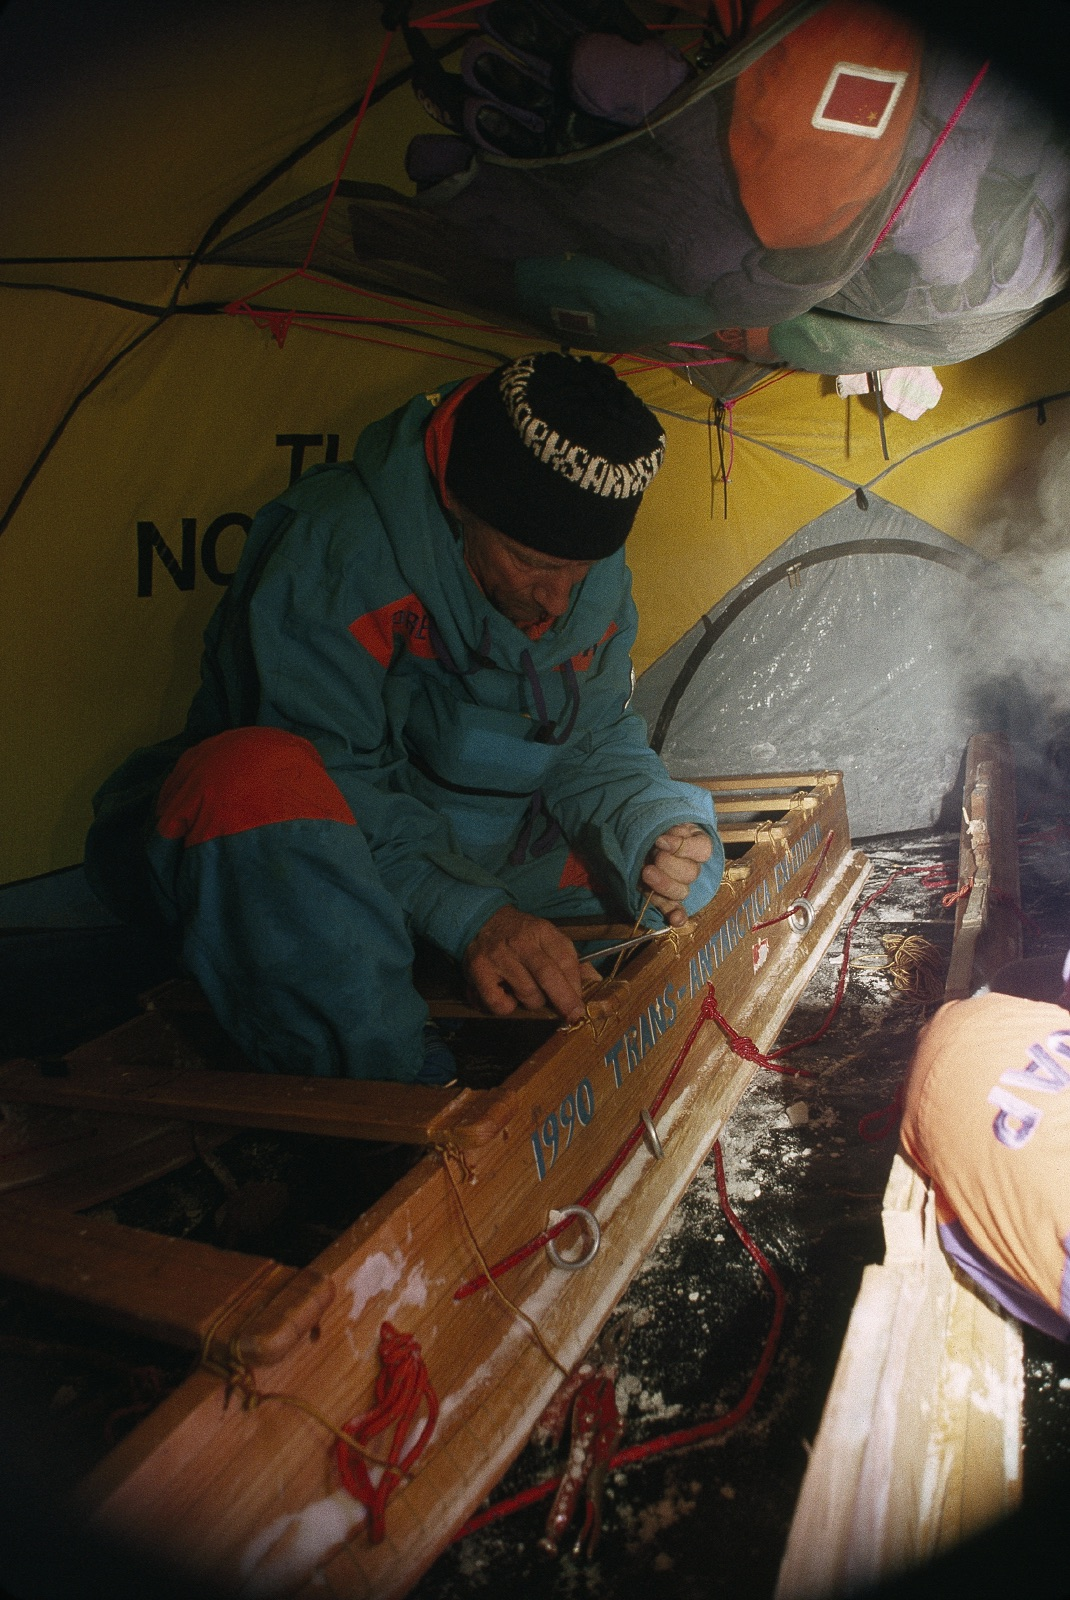 Repairing a sled indoors. Photo © Will Steger.